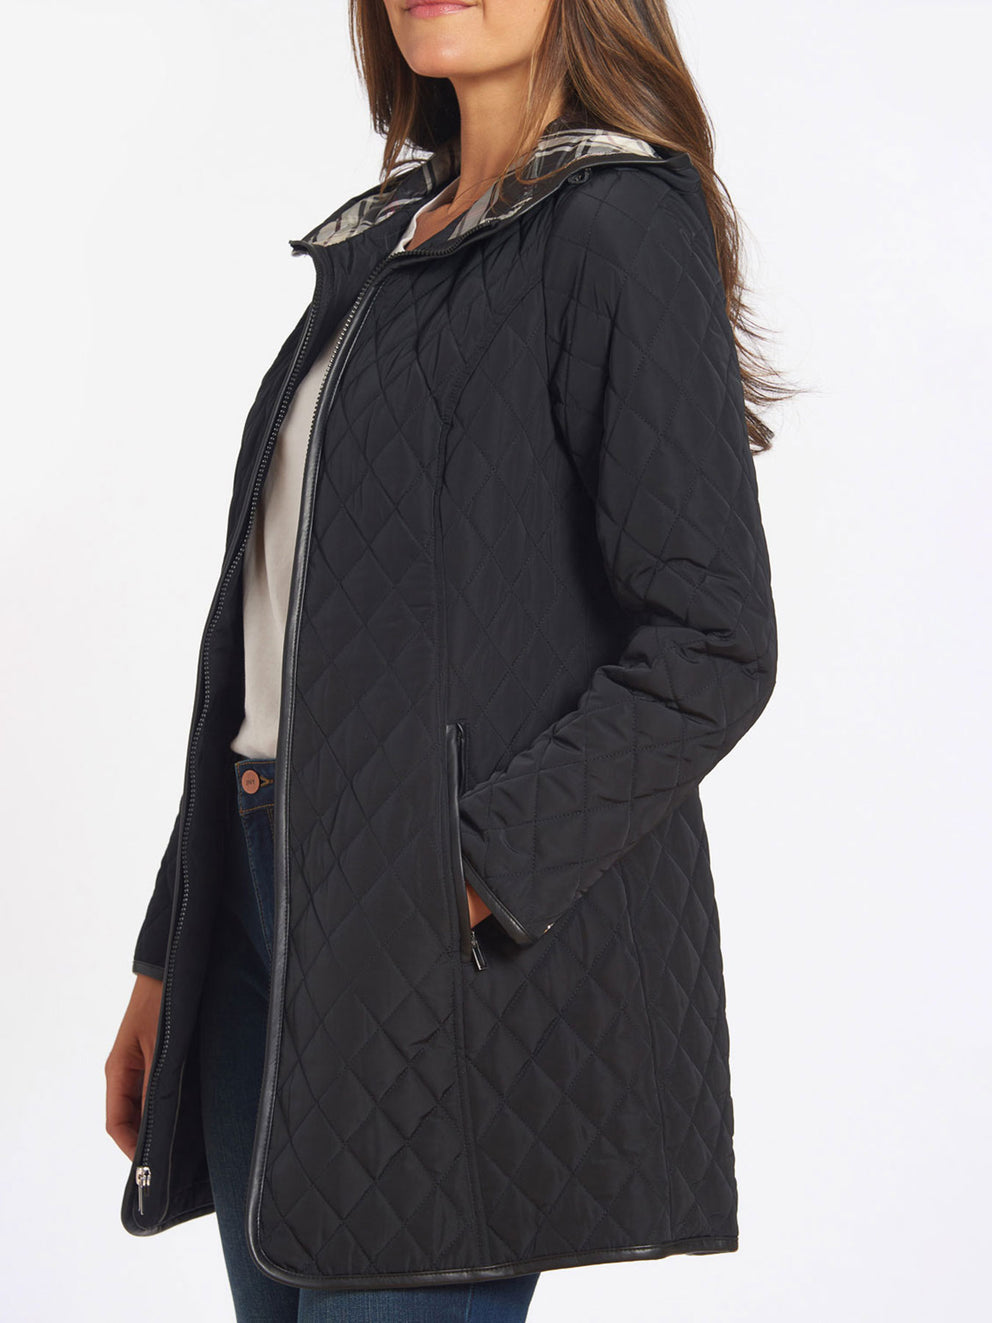 The Jones New York Quilted Princess Line Zip Coat in color Black - Image Position 3